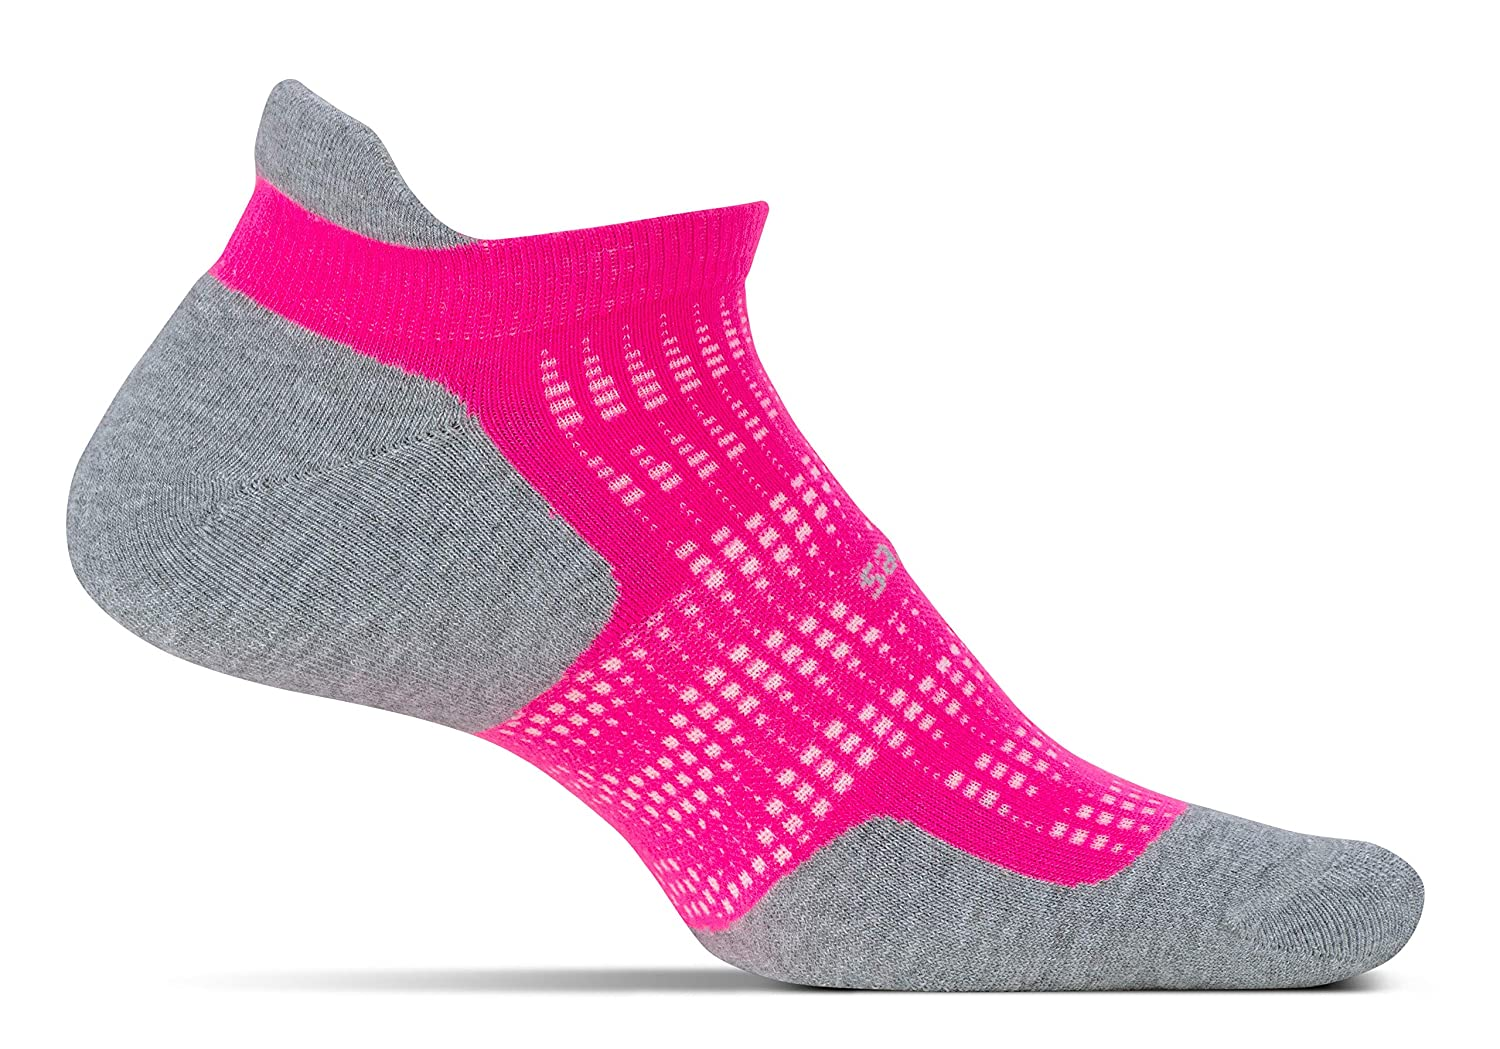 Feetures - High Performance Cushion - No Show Tab - Athletic Running Socks for Men and Women Feetures! Men's Socks FA50 trail running socks compression socks